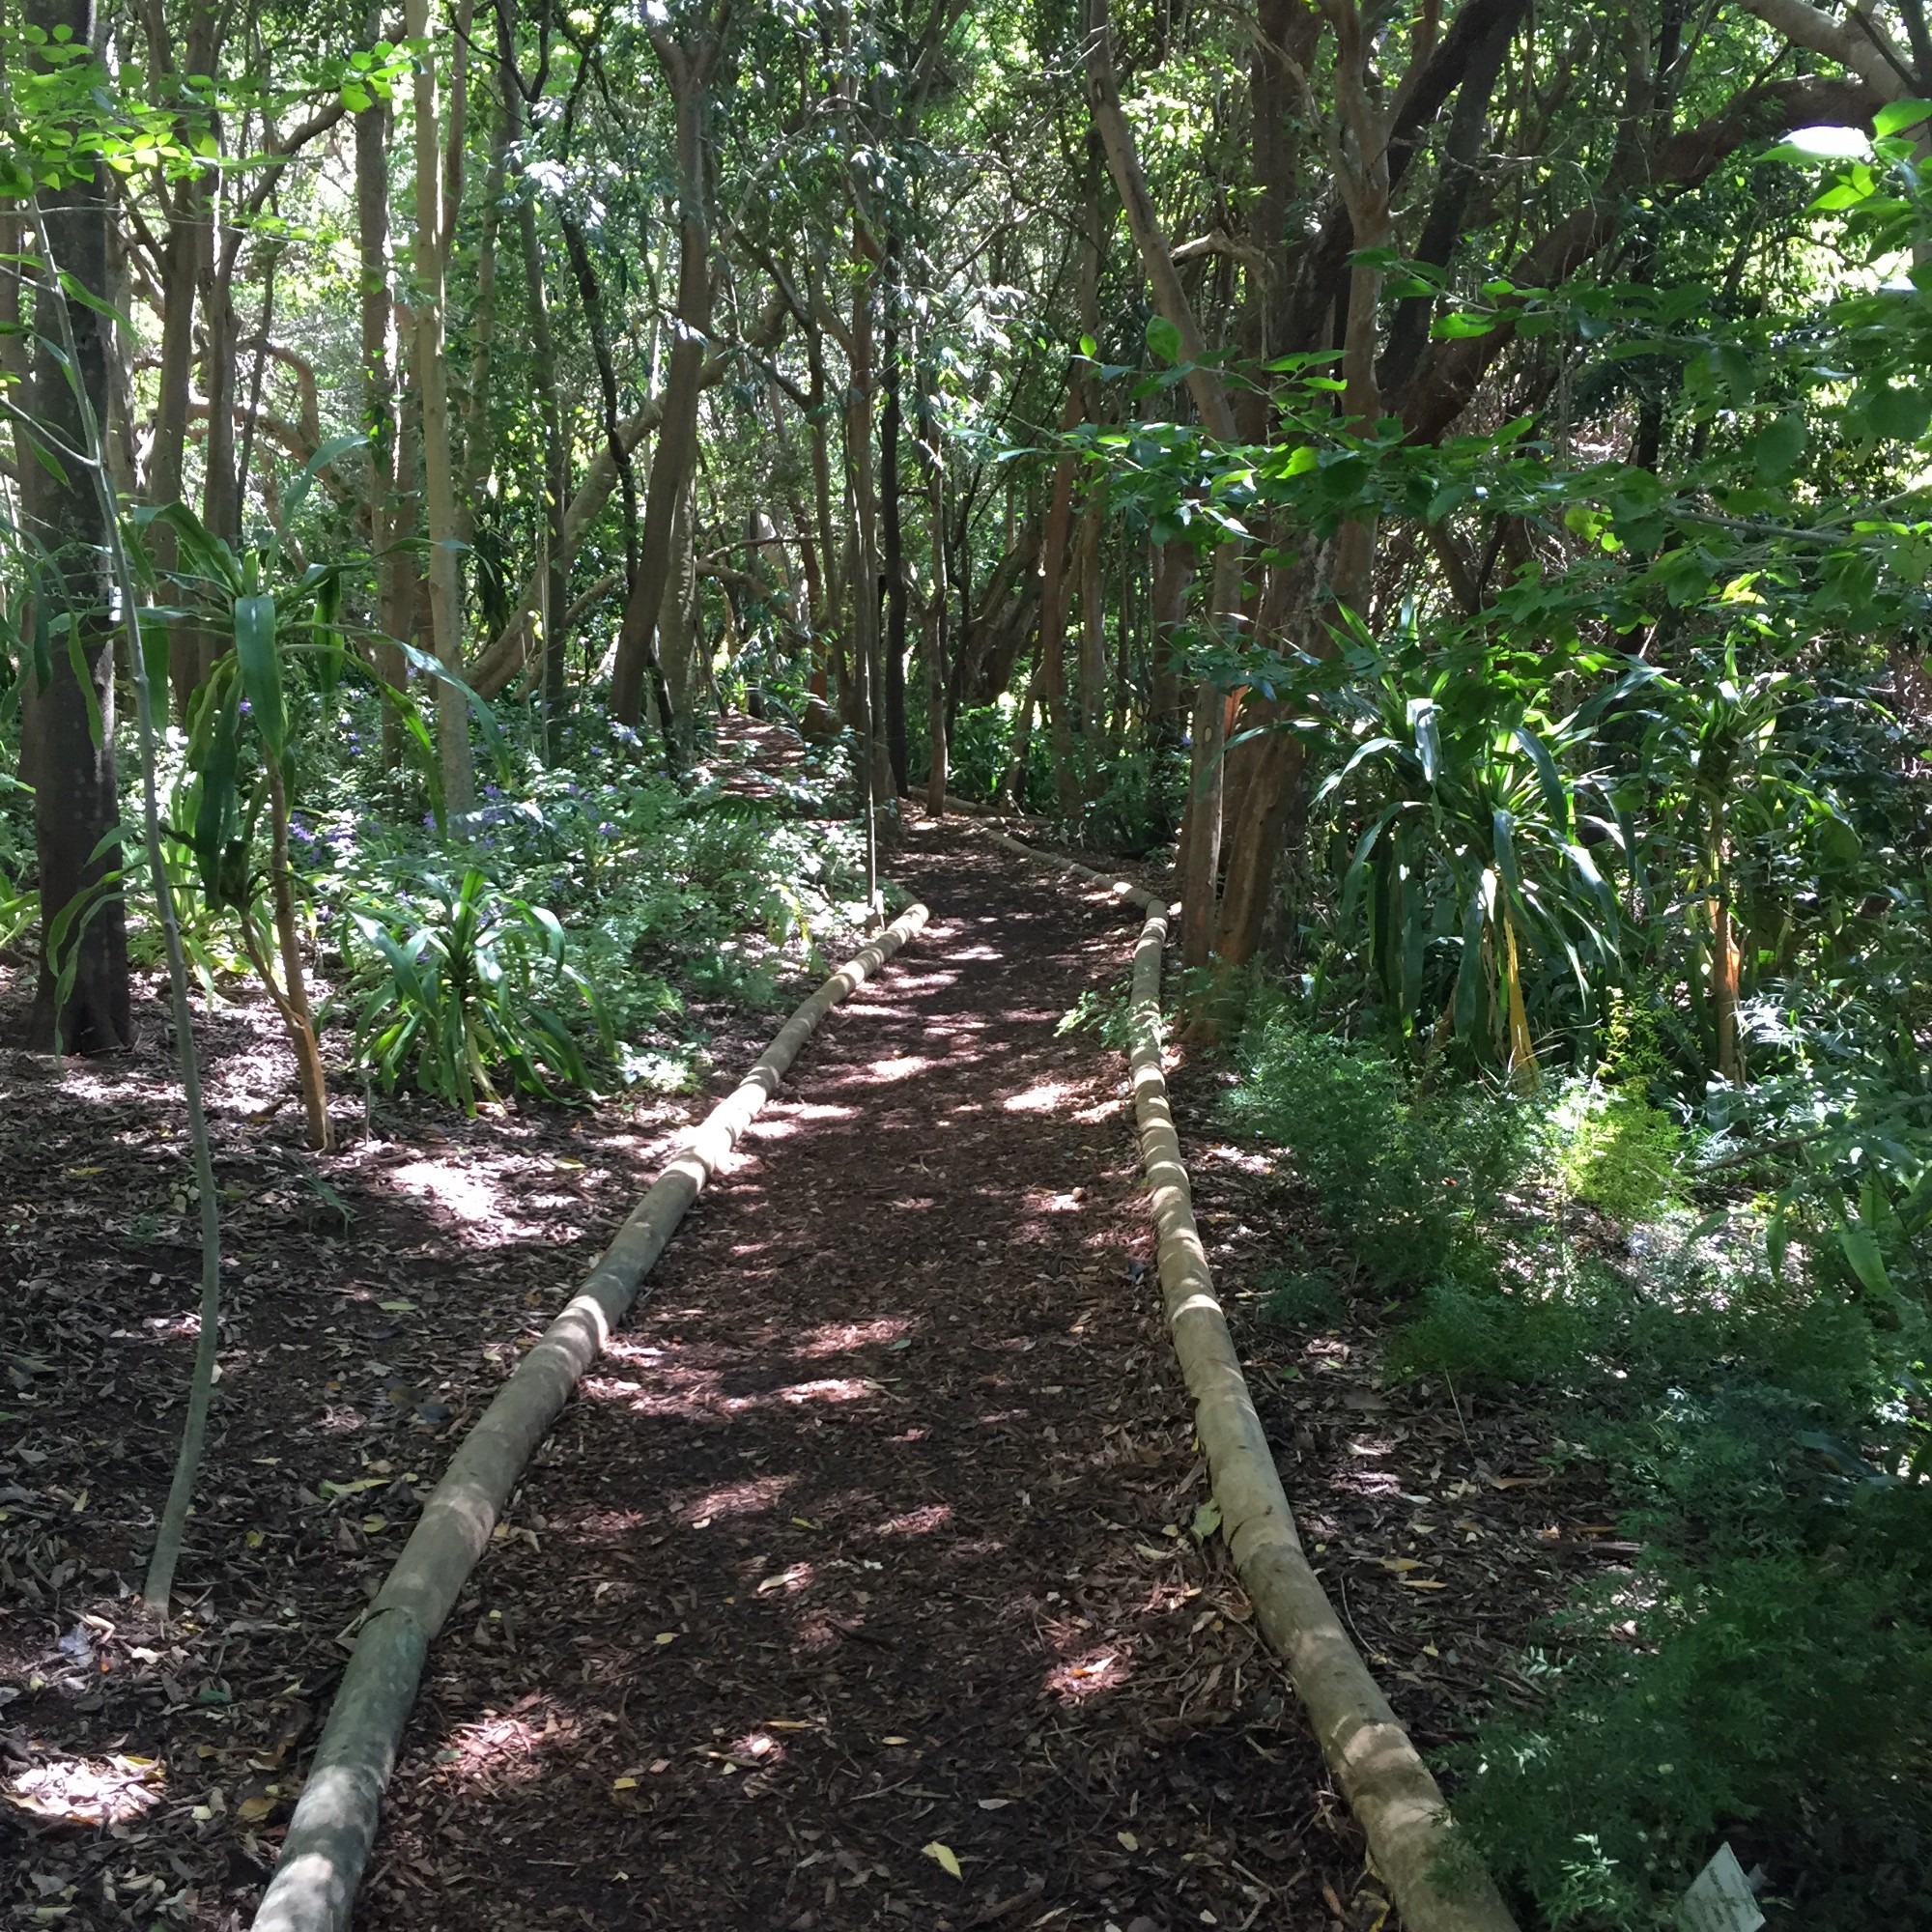 Green and sunny wooded path marked by bamboo sticks and covered with mulch.